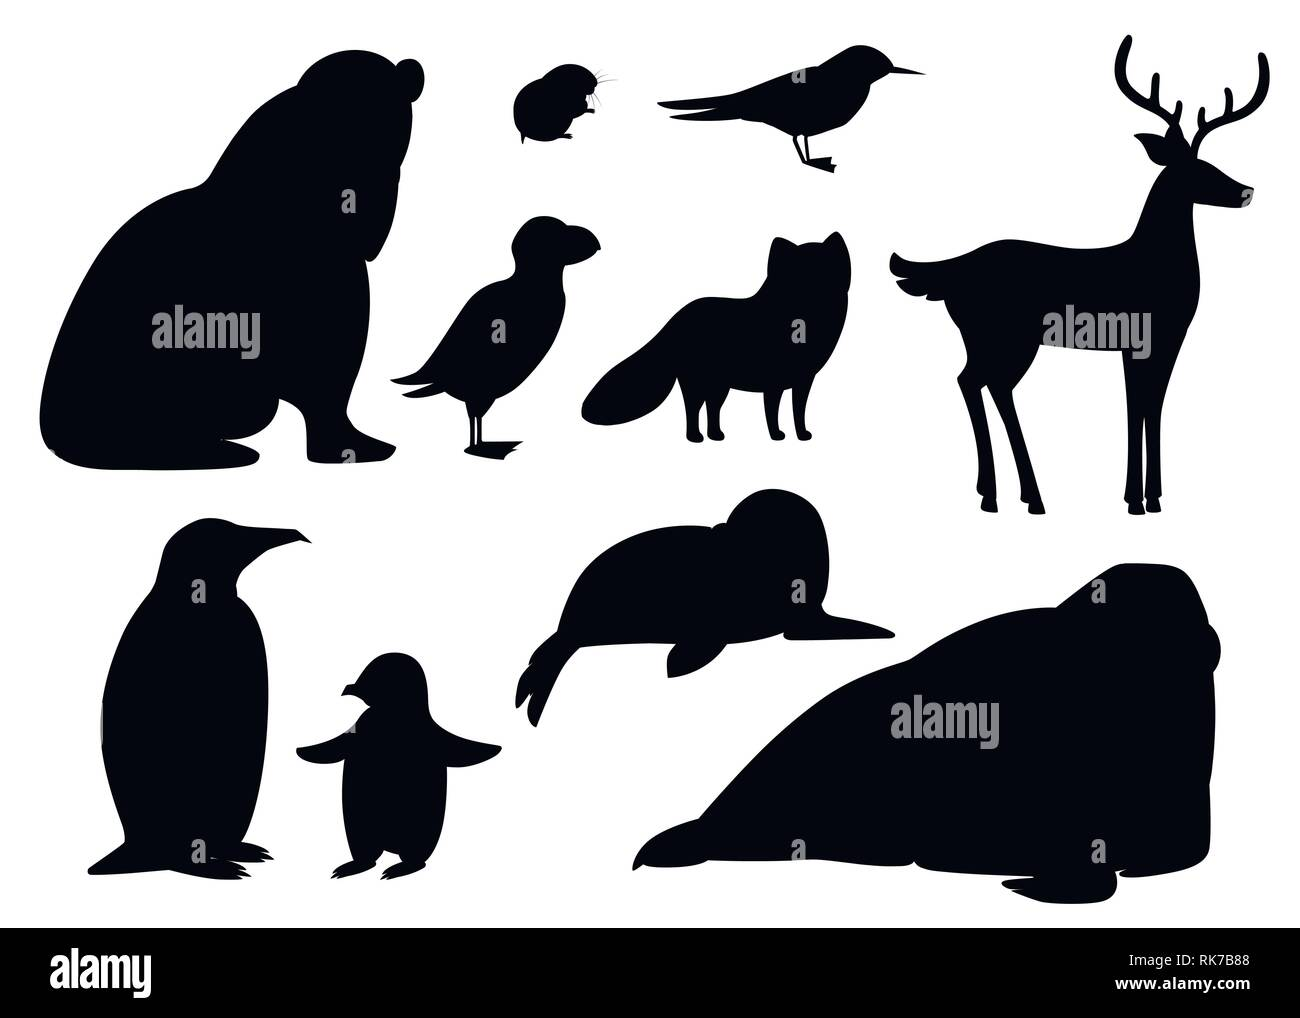 Black silhouette. Set of arctic animals icon. Birds and mammals. Arctic animal, cartoon flat design. Vector illustration isolated on white background. - Stock Vector